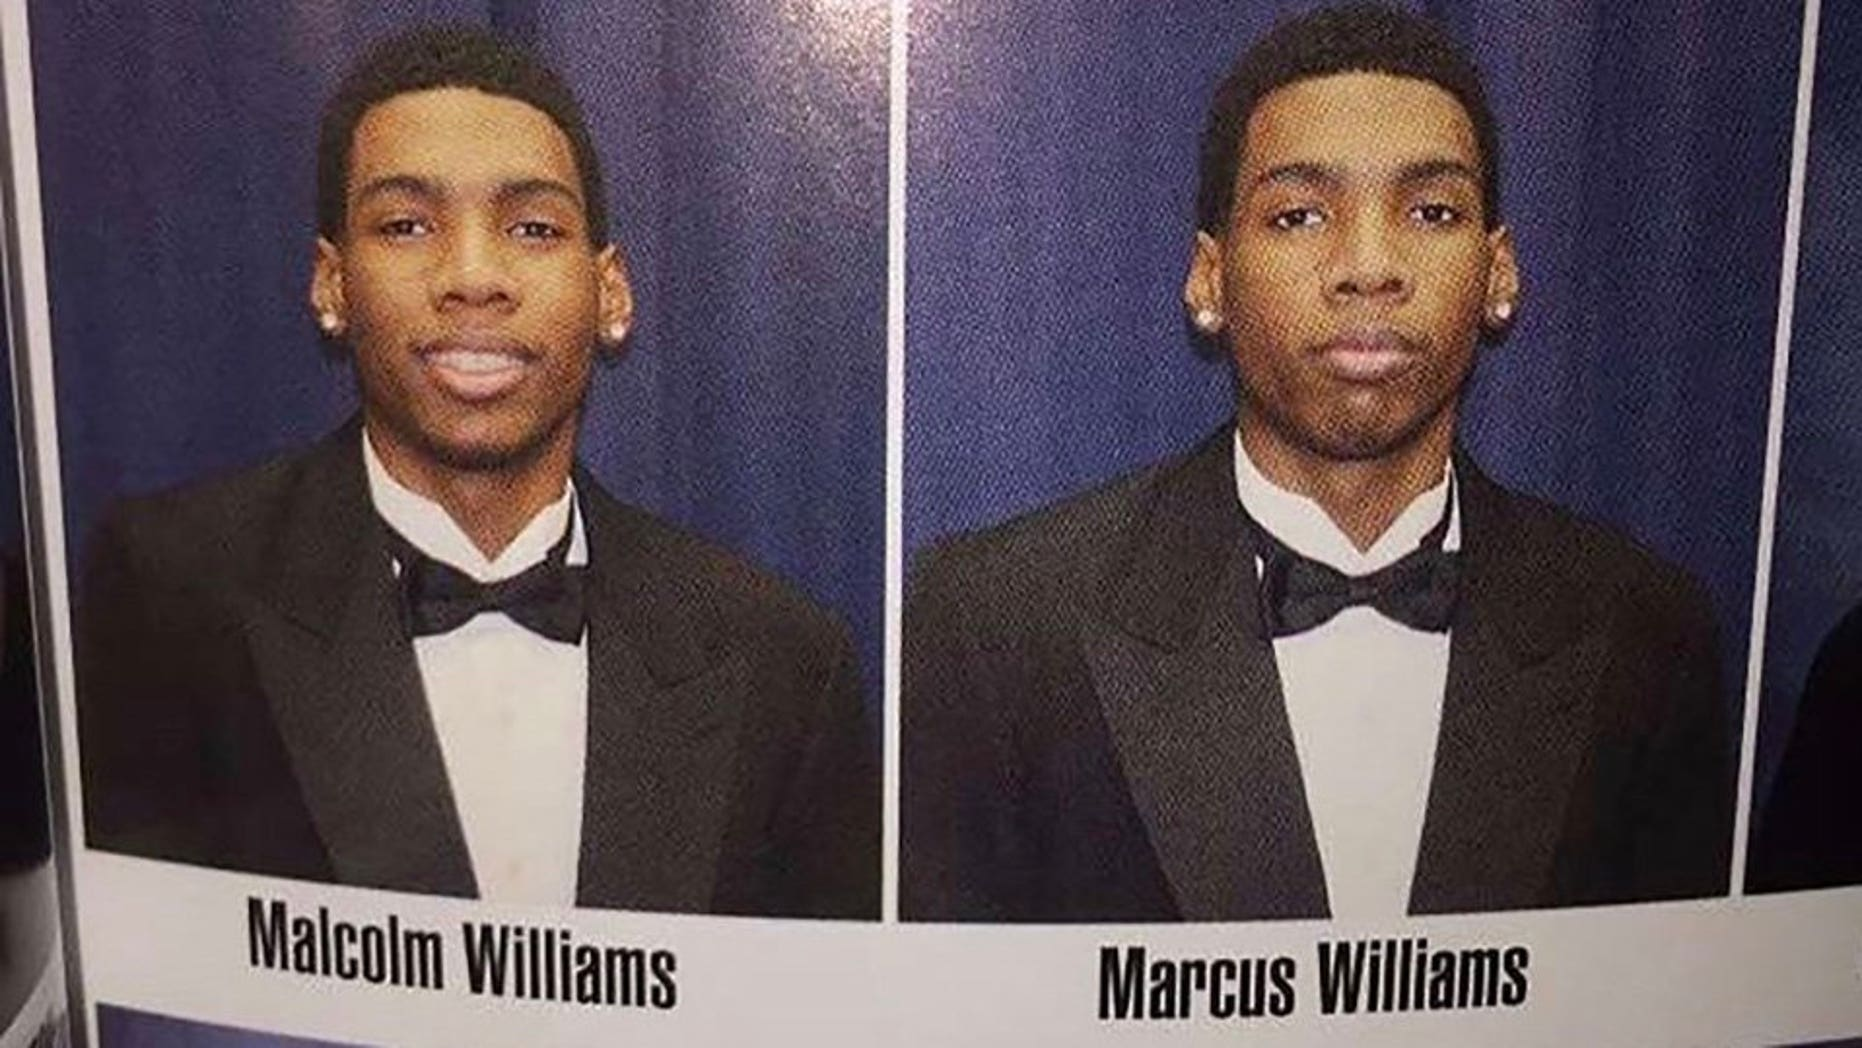 Marcus Williams says his brother, Malcolm, once filled in for him on school picture day when he was sick.